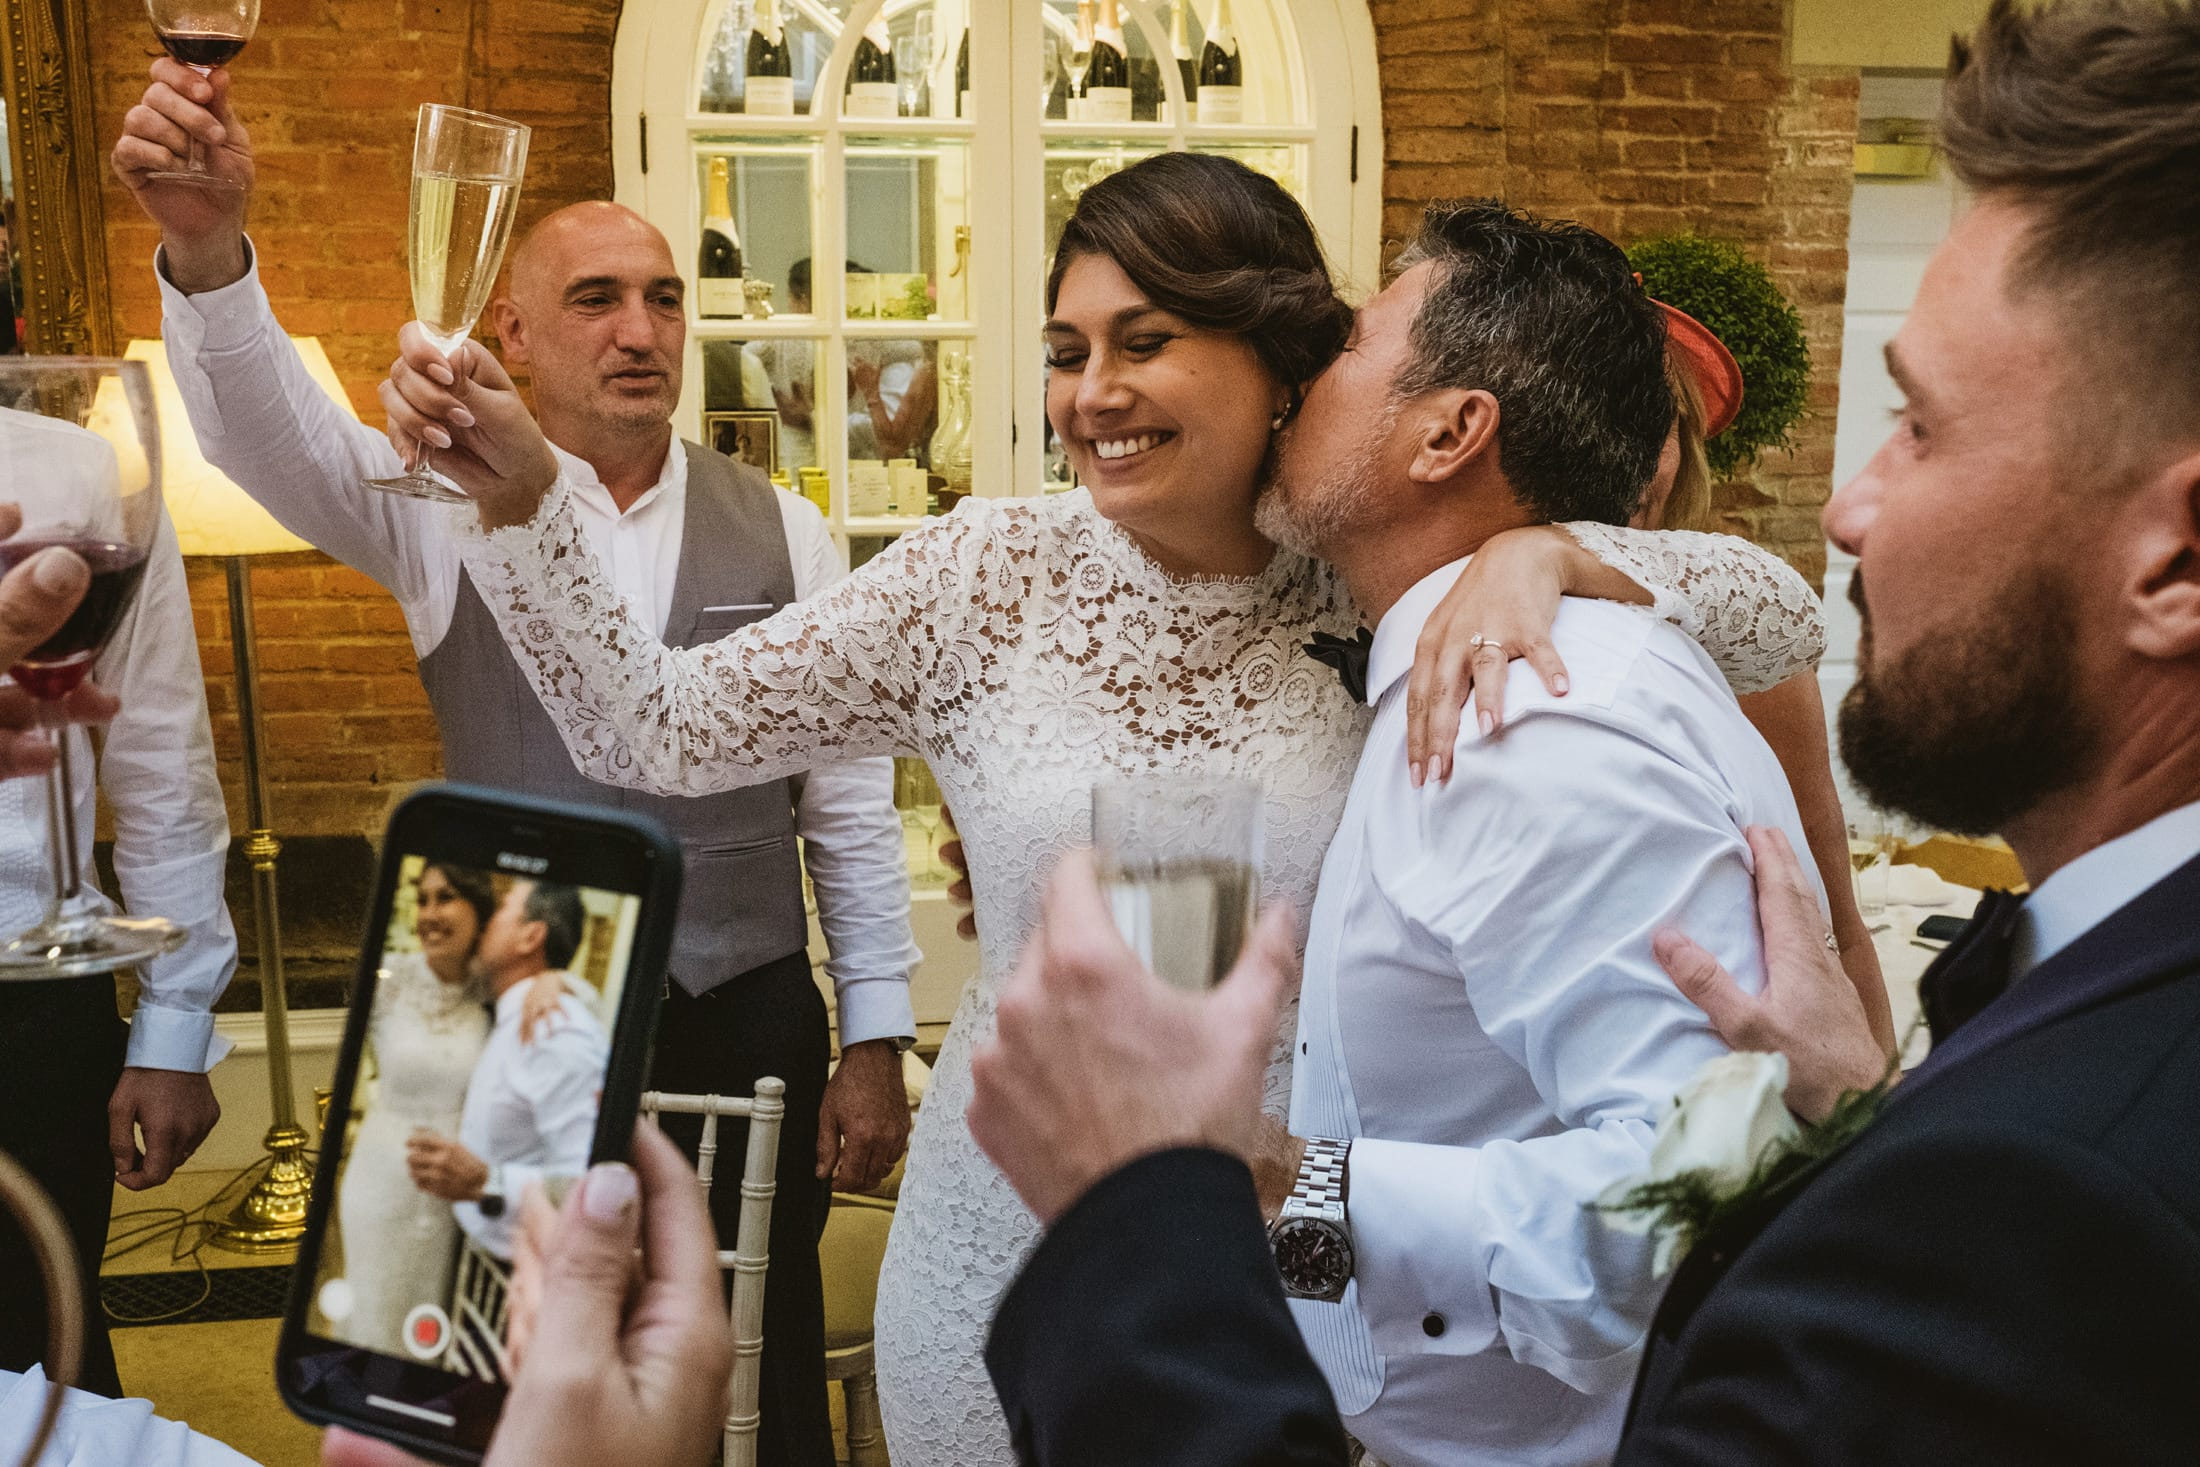 bride celebrating with a glass of champagne in her hand and her dad hugging her